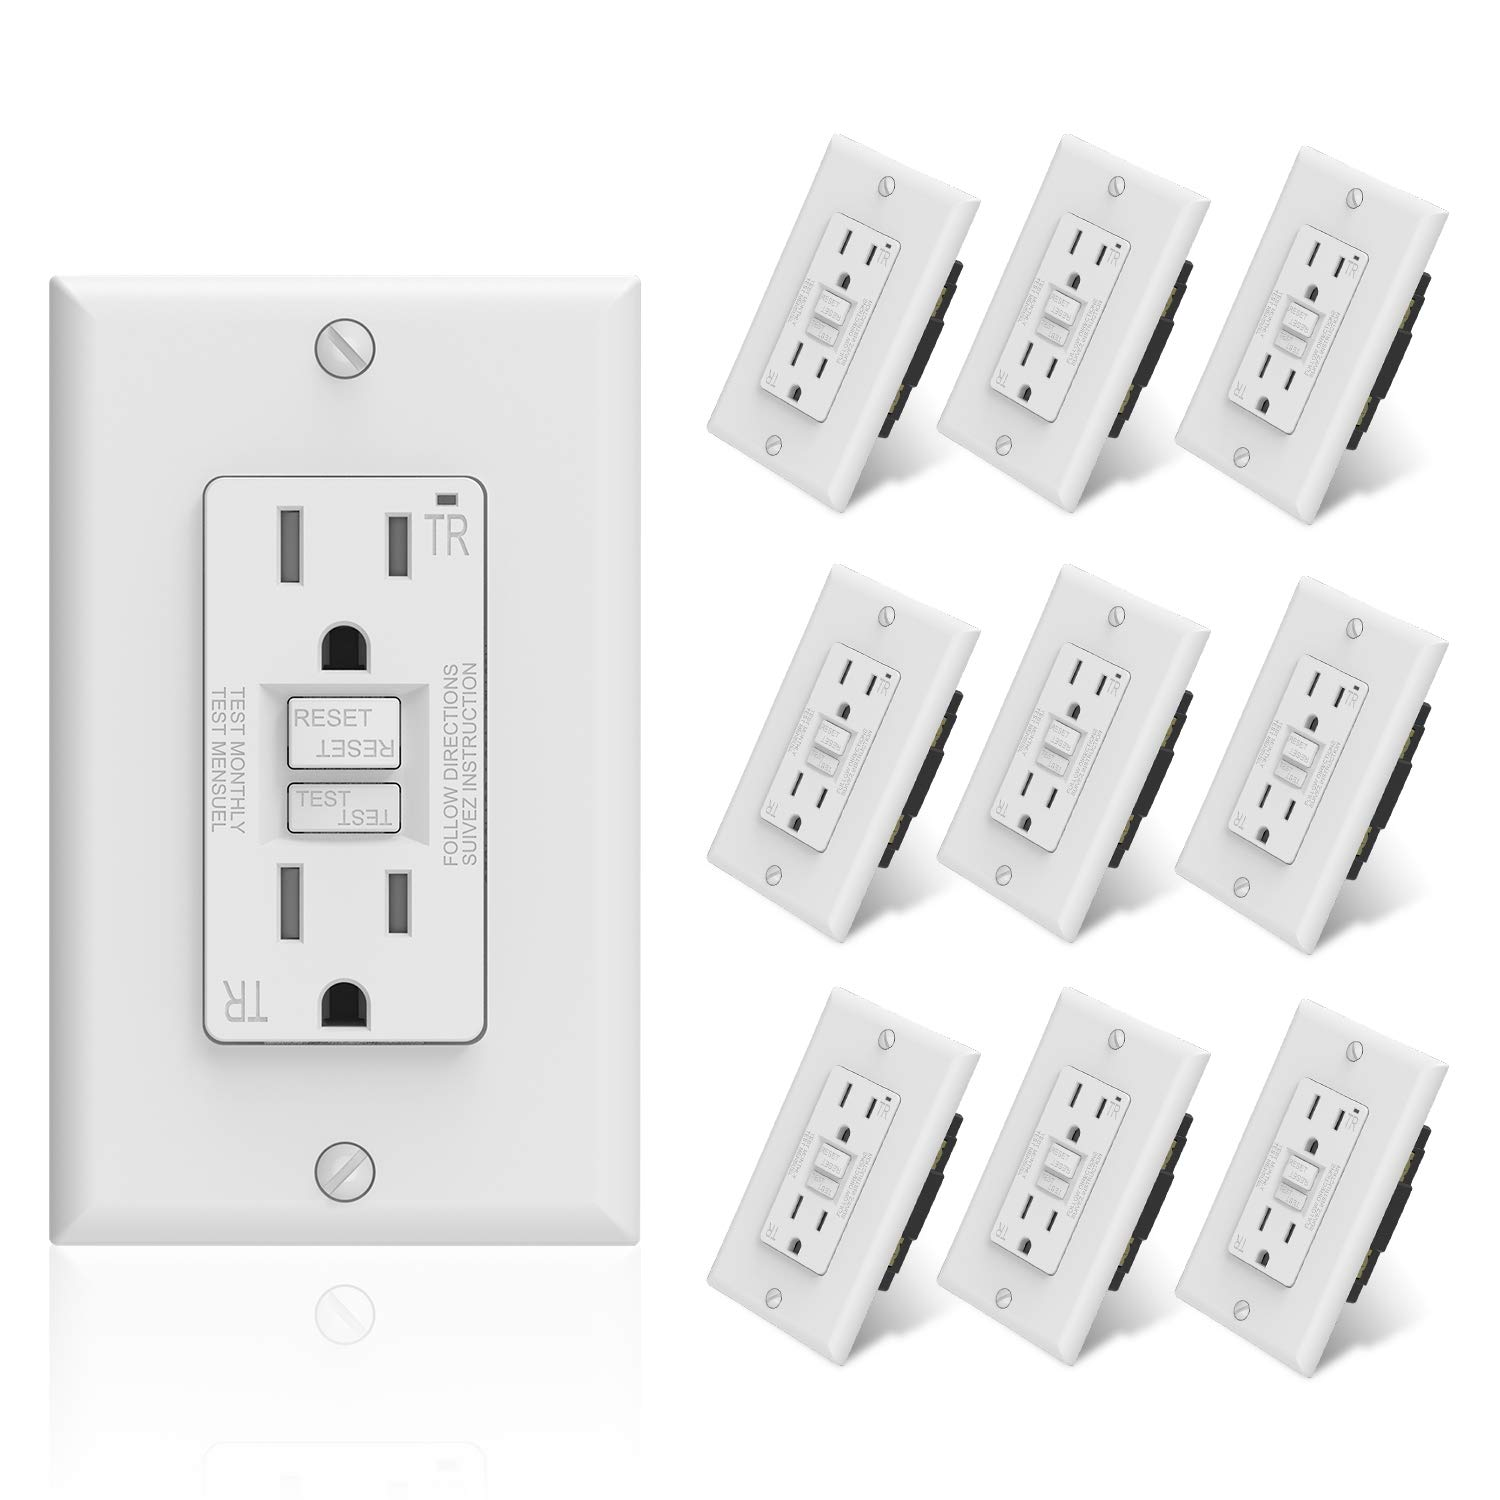 Wall Plate Included Self-Test Ground Fault Circuit Interrupters 10 Pack ELEGRP 15 Amp GFCI Outlet TR Tamper Resistant with LED Indicator 5-15R Narrow Design GFI Dual Receptacle White UL Listed